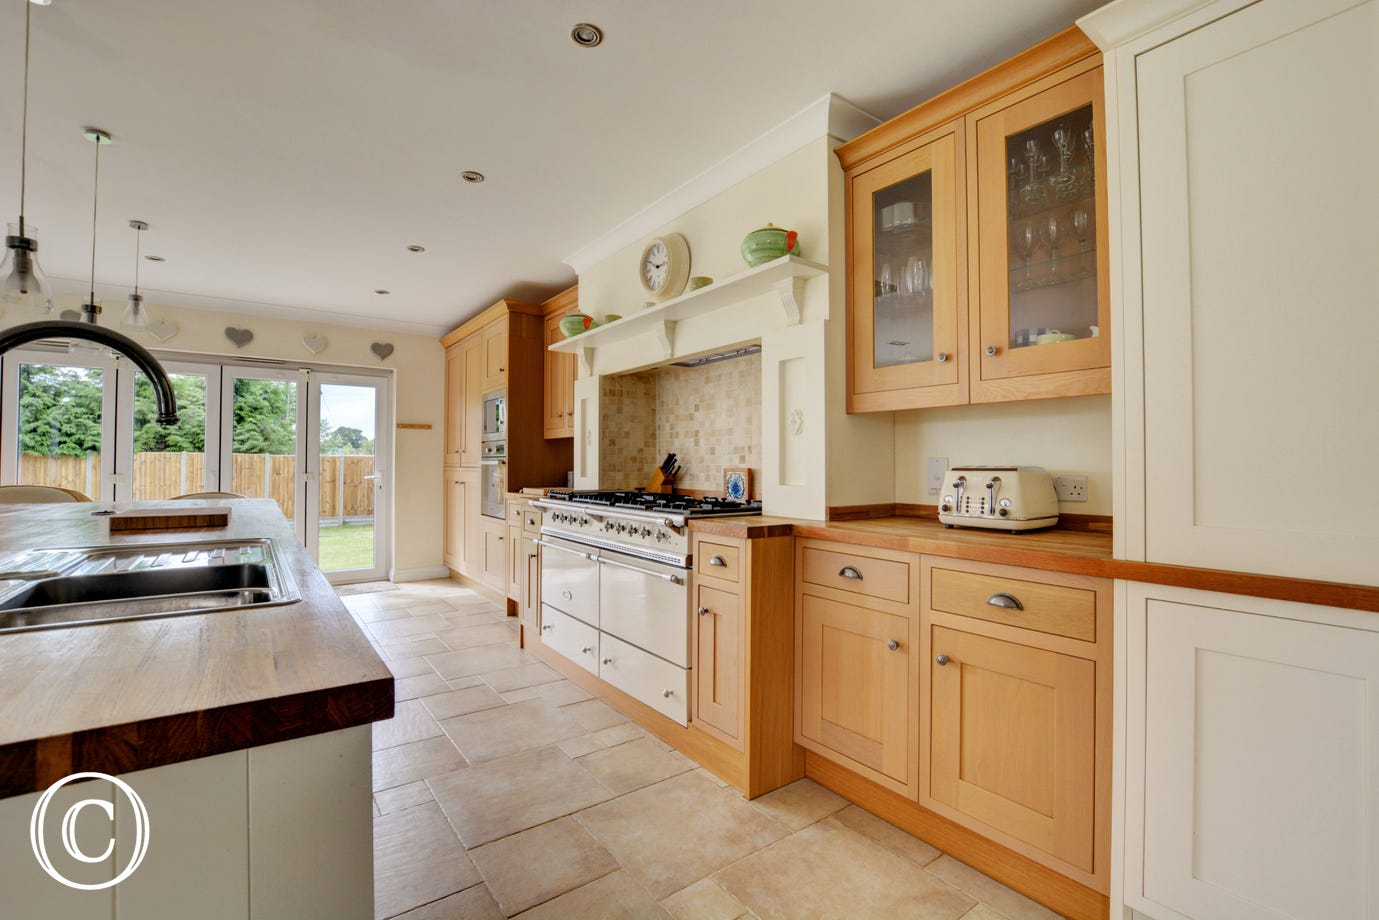 Kitchen with Lacanche range cooker